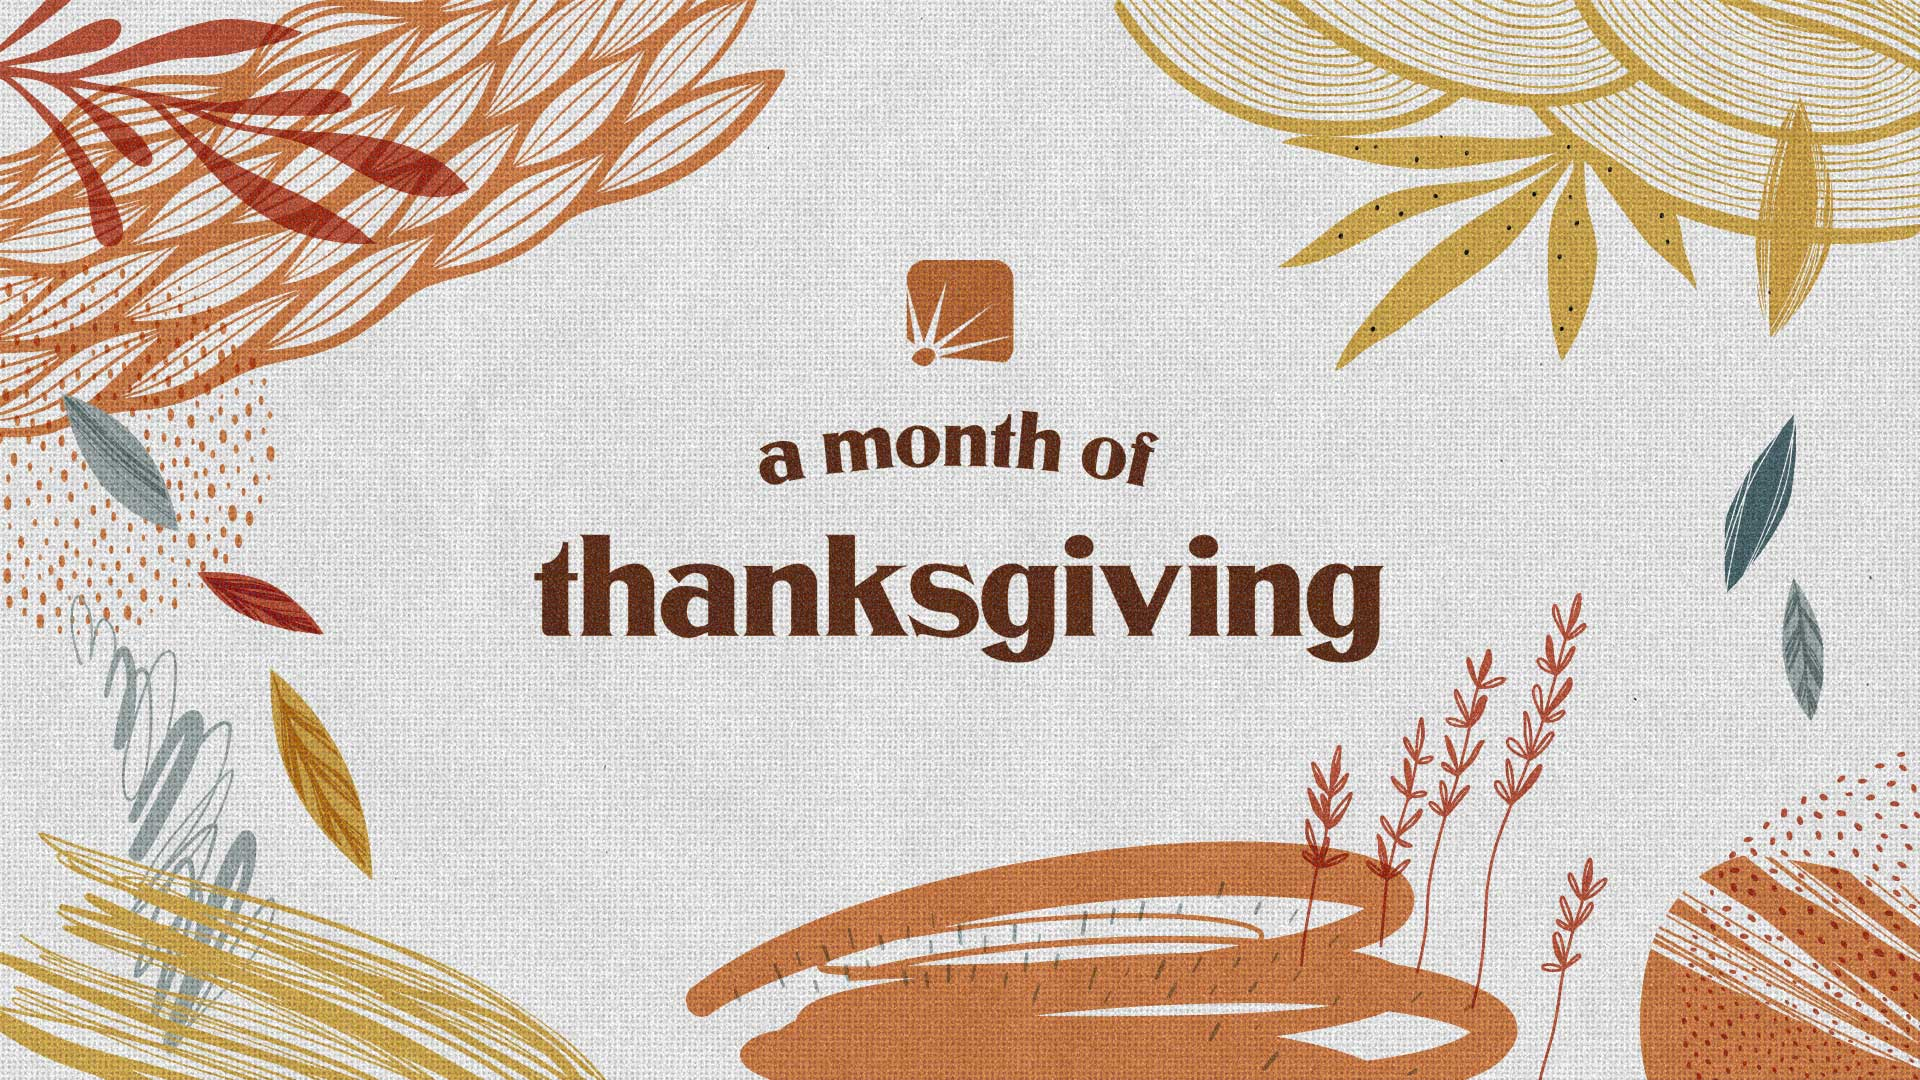 A Month of Thanksgiving